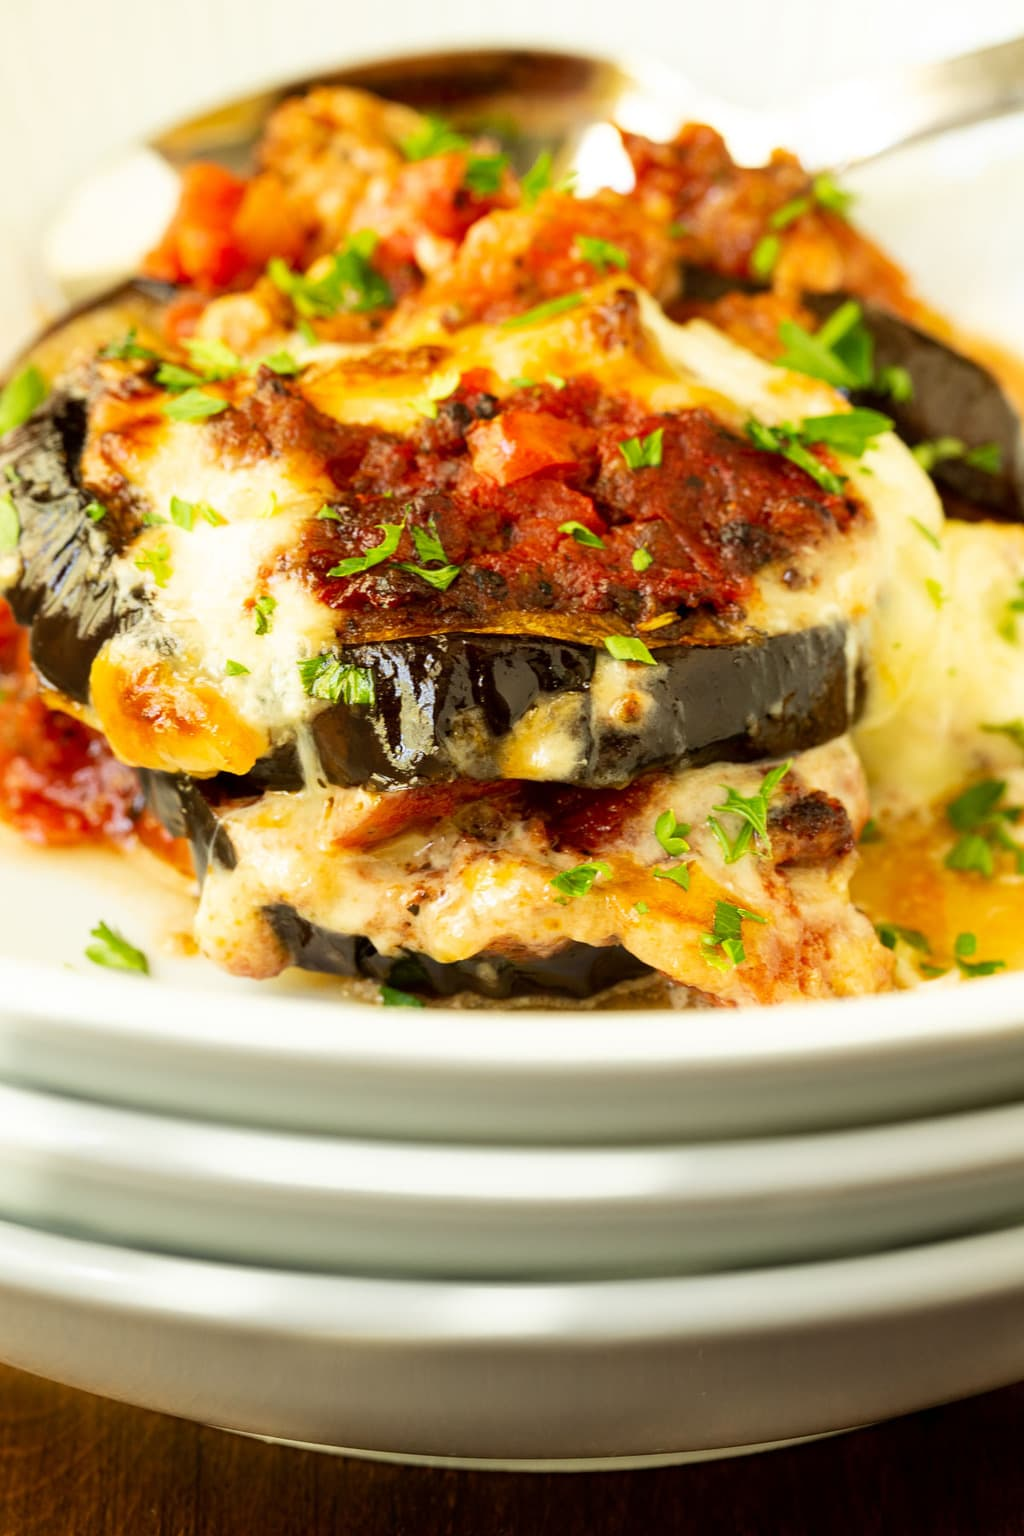 Vertical extreme closeup photo of a serving of Eggplant Italian Sausage Gratin in a white individual serving bowl.